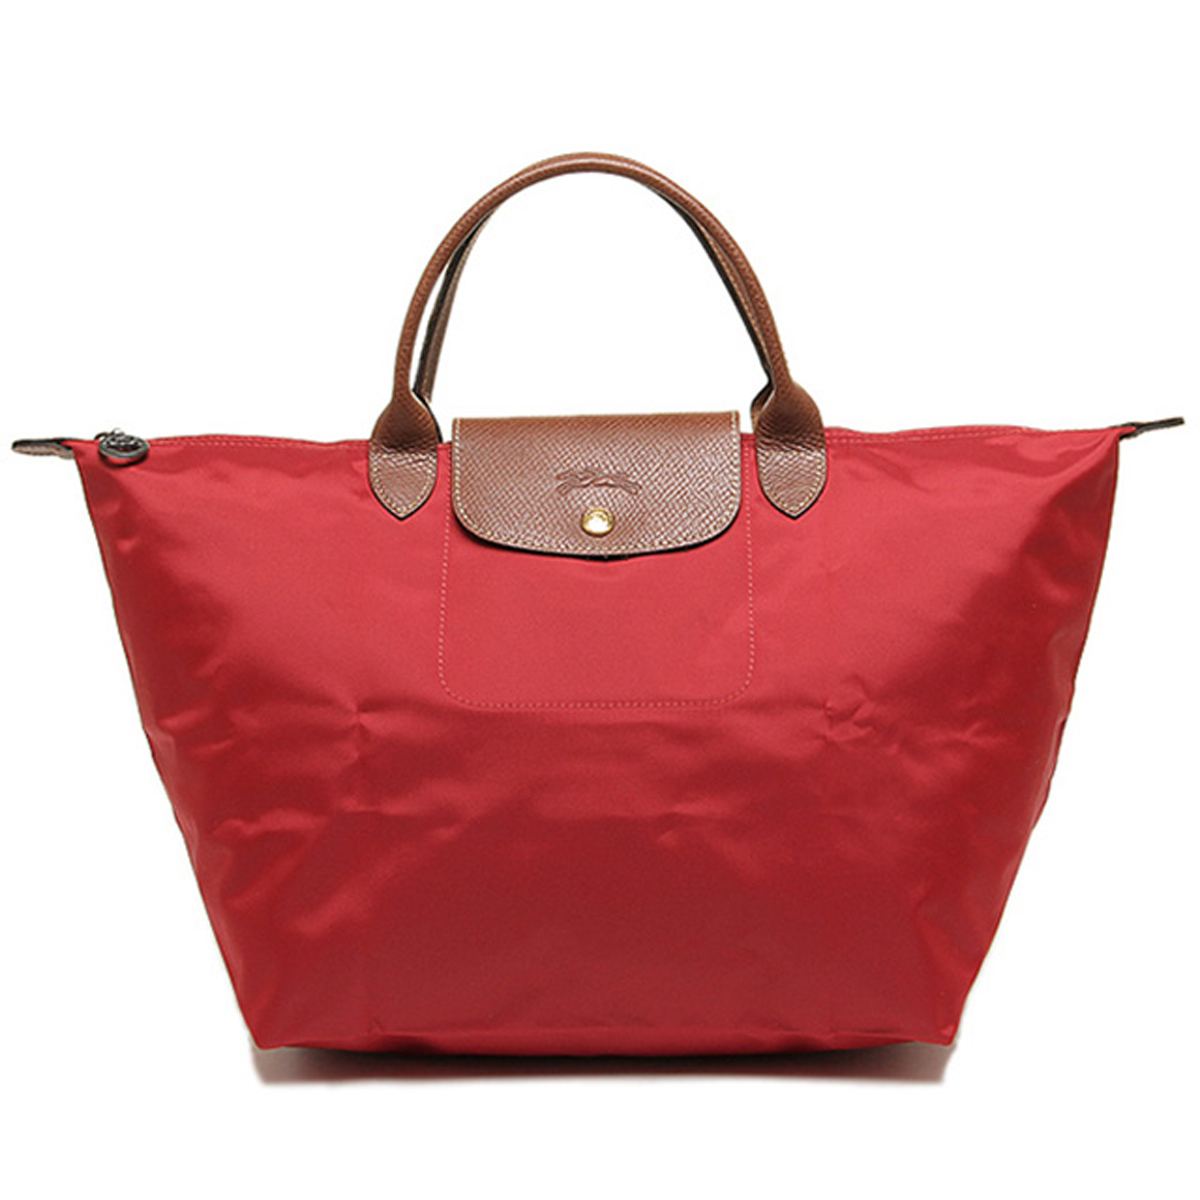 Longchamp Handbag Tote Bag Foldable Bags Le Pliage ルプリアージュ Red Womens New Brands Nylon Leather Folding M Size Fs2gm